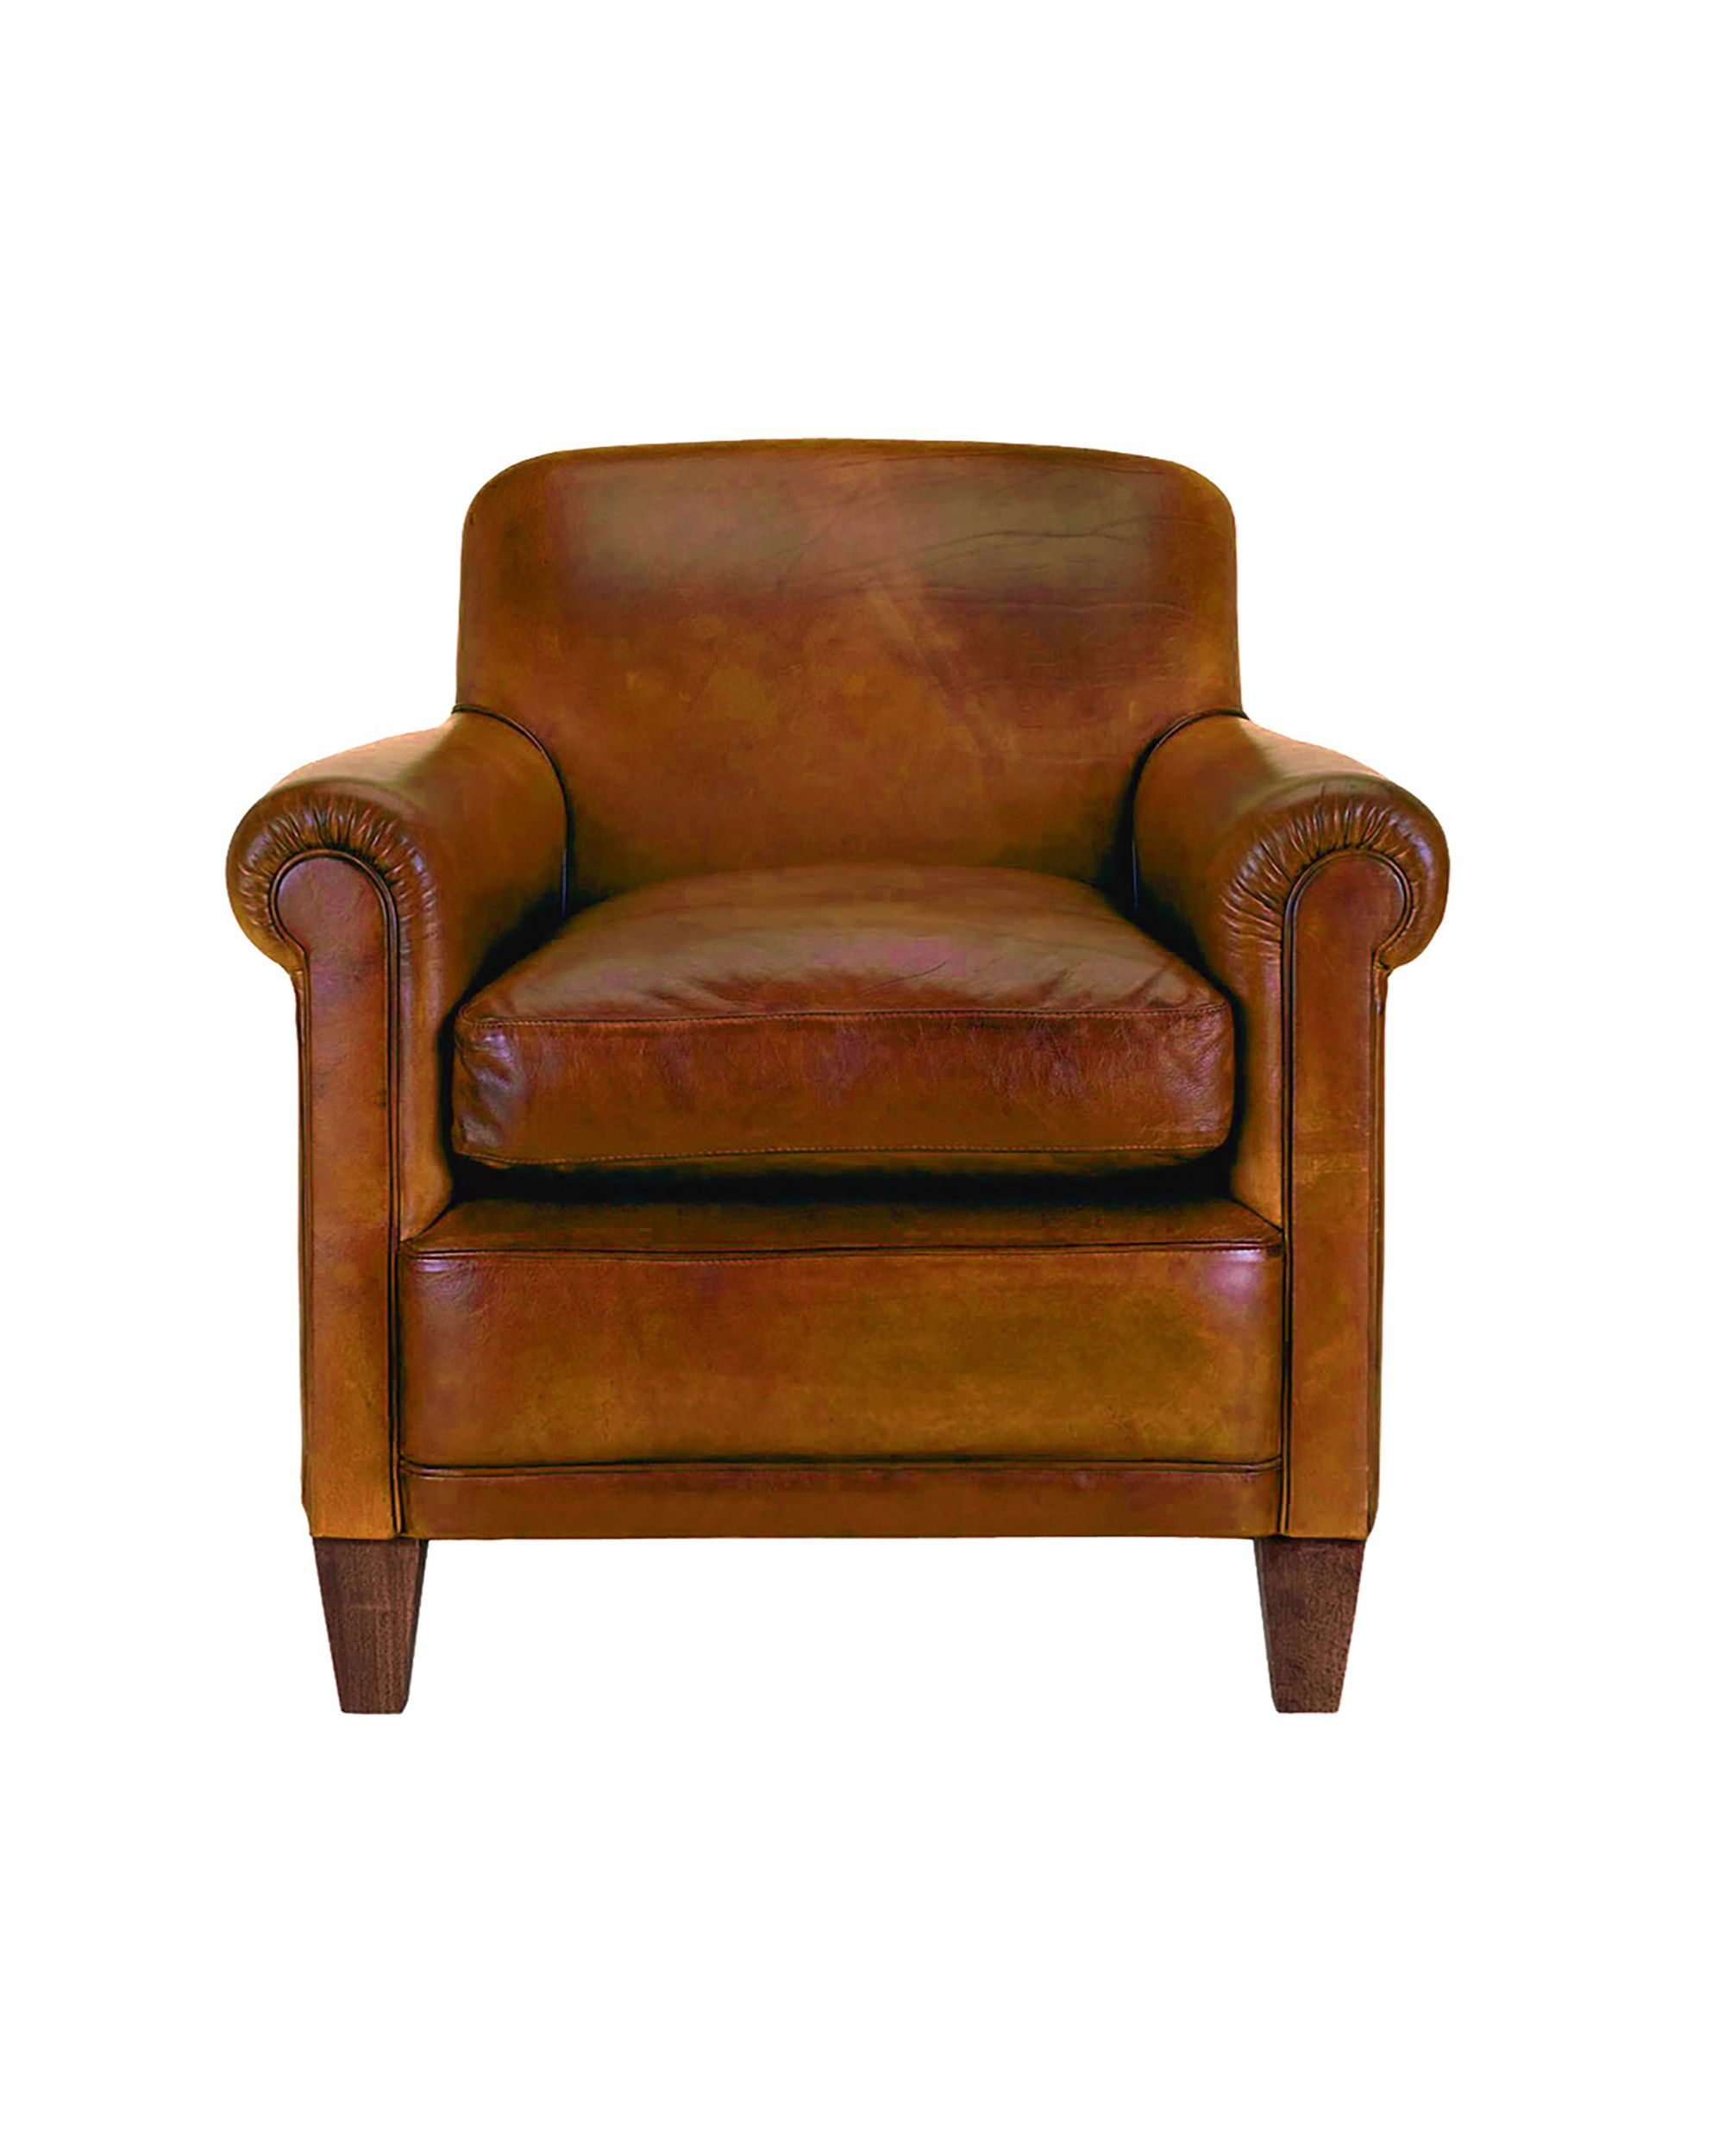 Made to order Sofas Burlington Leather Chair in Distressed